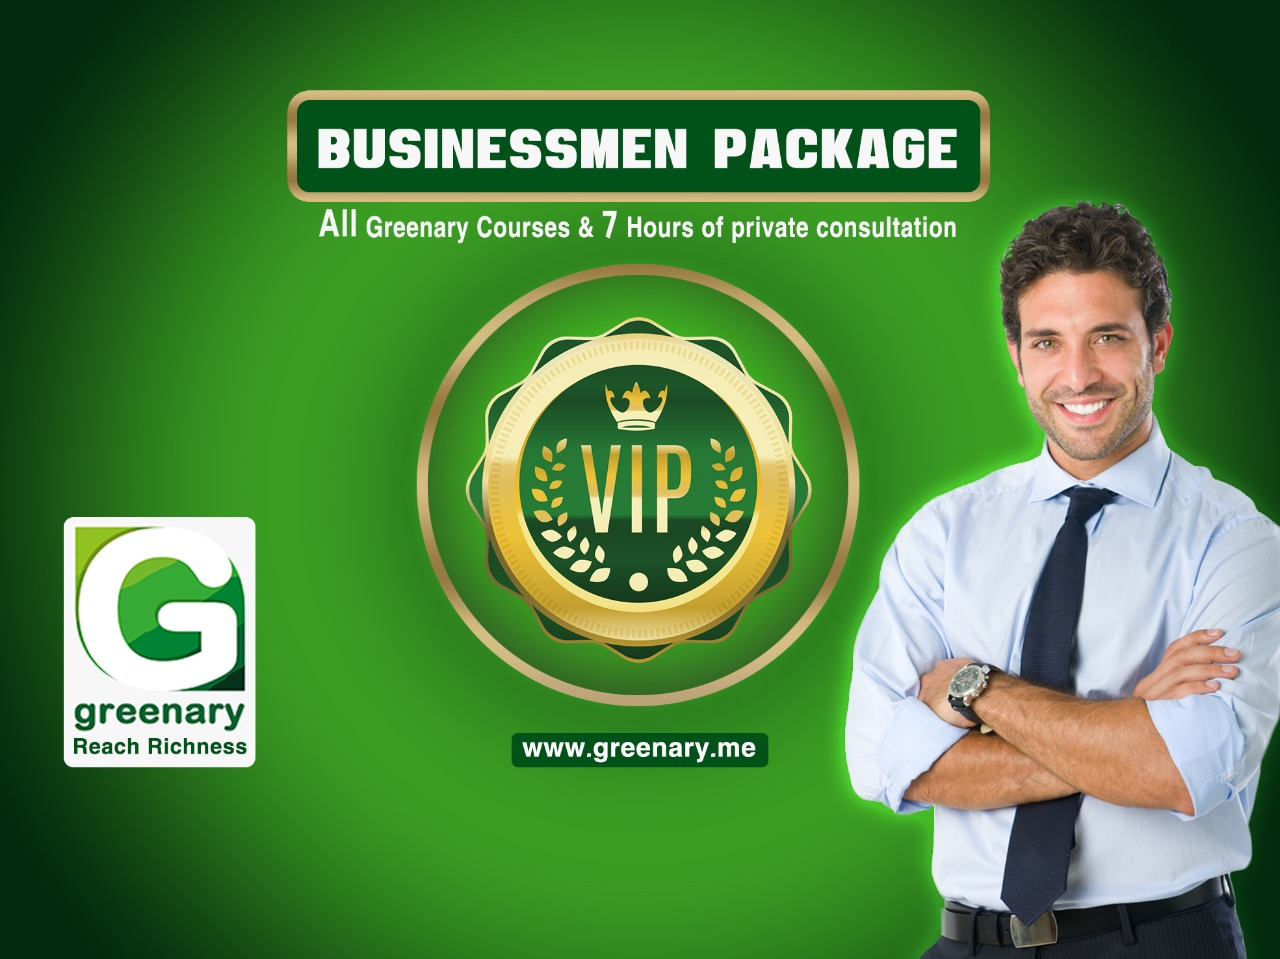 Businessmen Package VIP 2021-02-09 at 2.07.04 PM